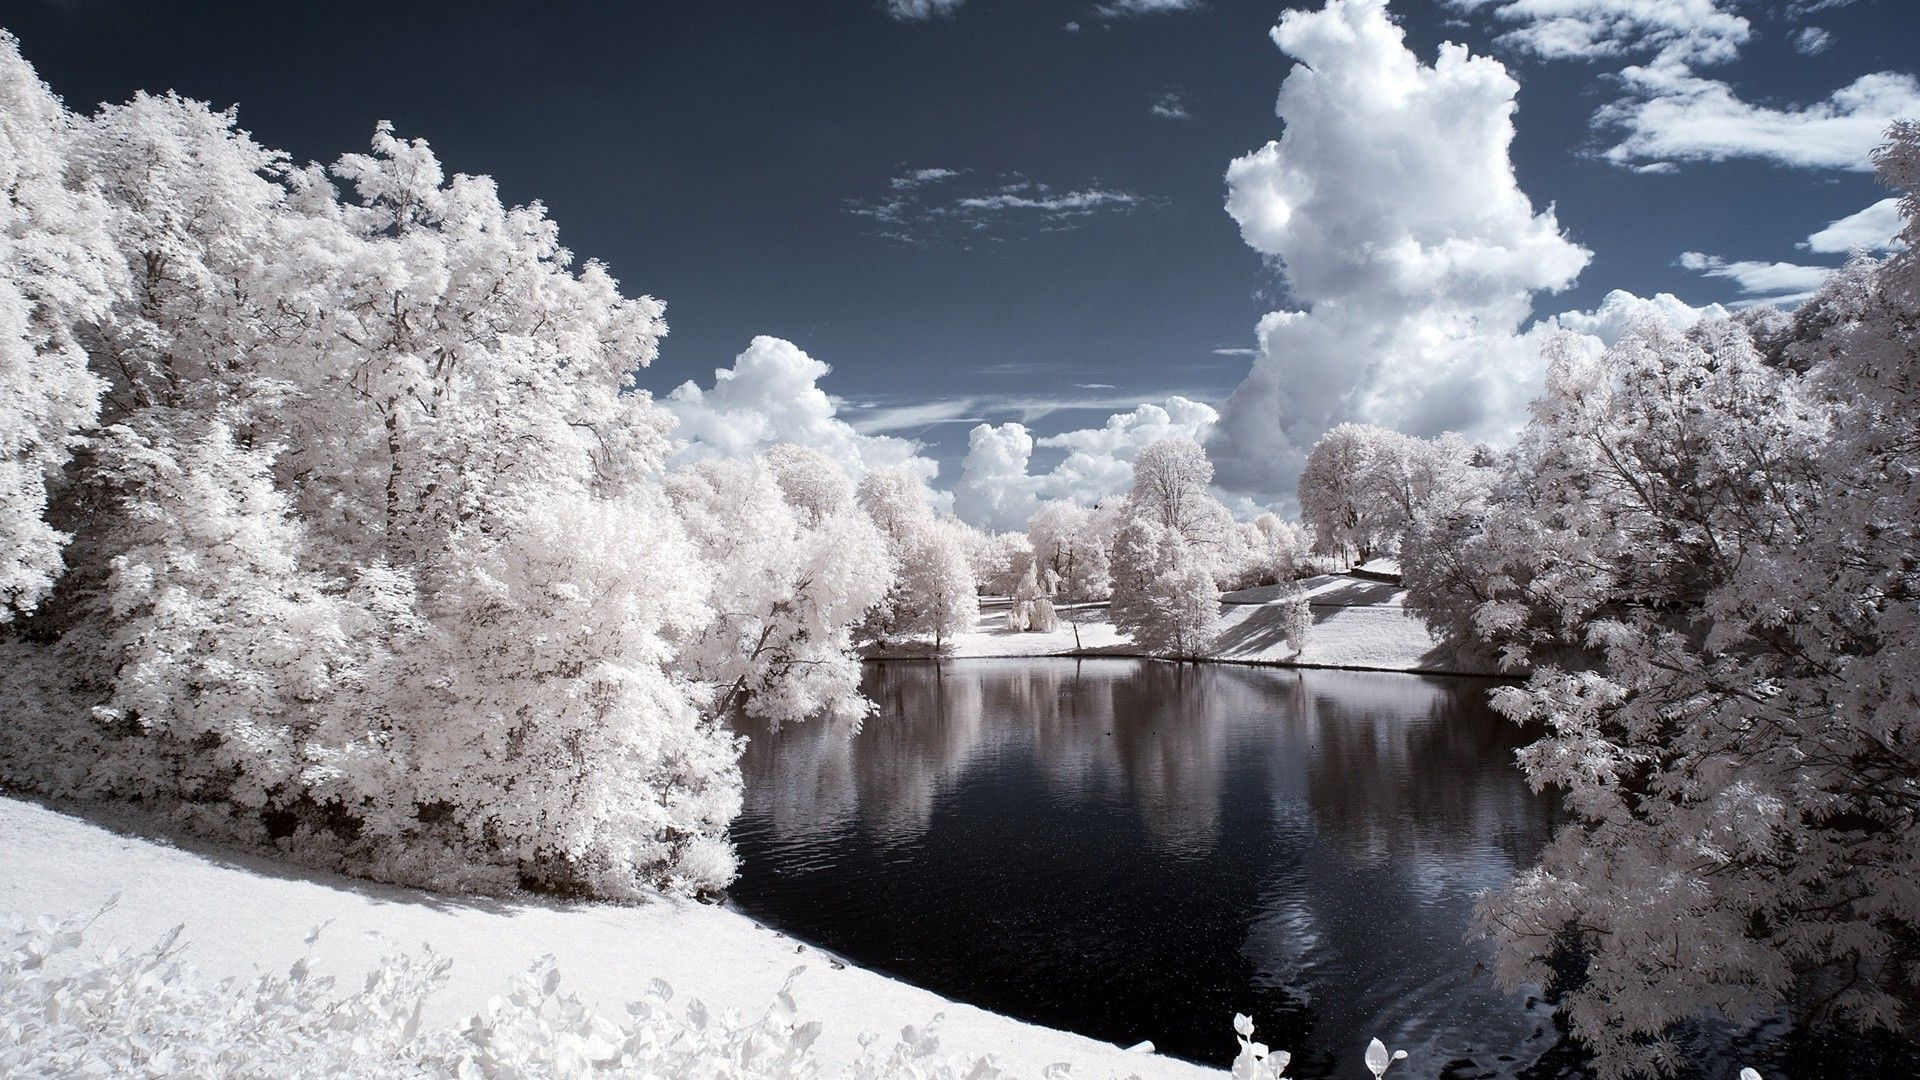 winter time wallpaper cool - photo #26